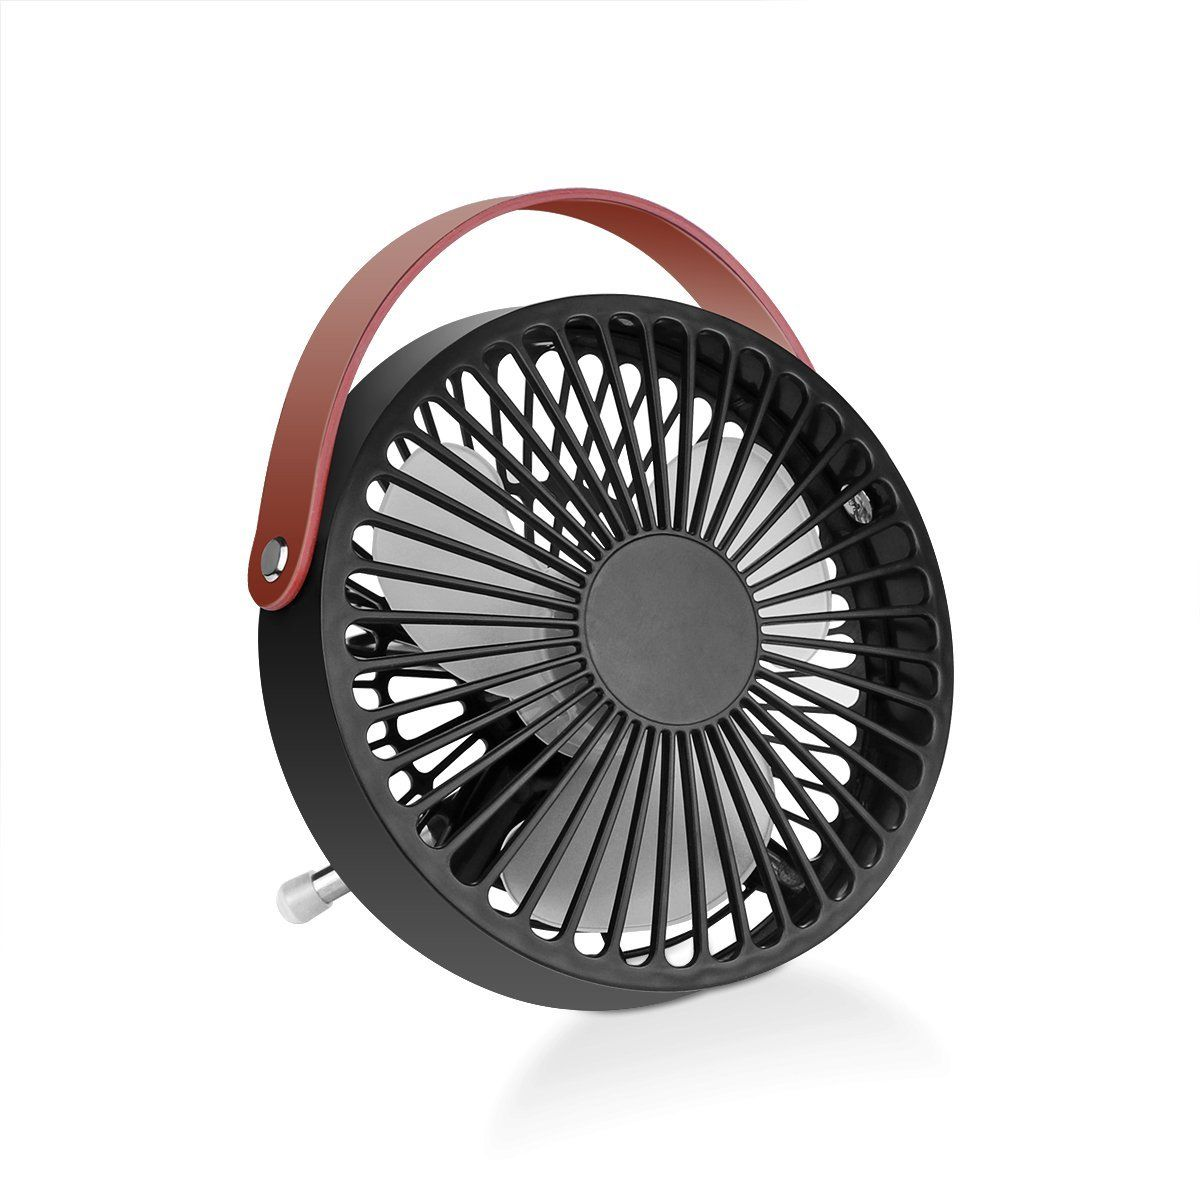 Konesky Small Desk USB Cooling Fan With Leather Handle   Quiet Office Fan  With Enhanced Airflow, Lower Noise, Fashion Design | GEECR